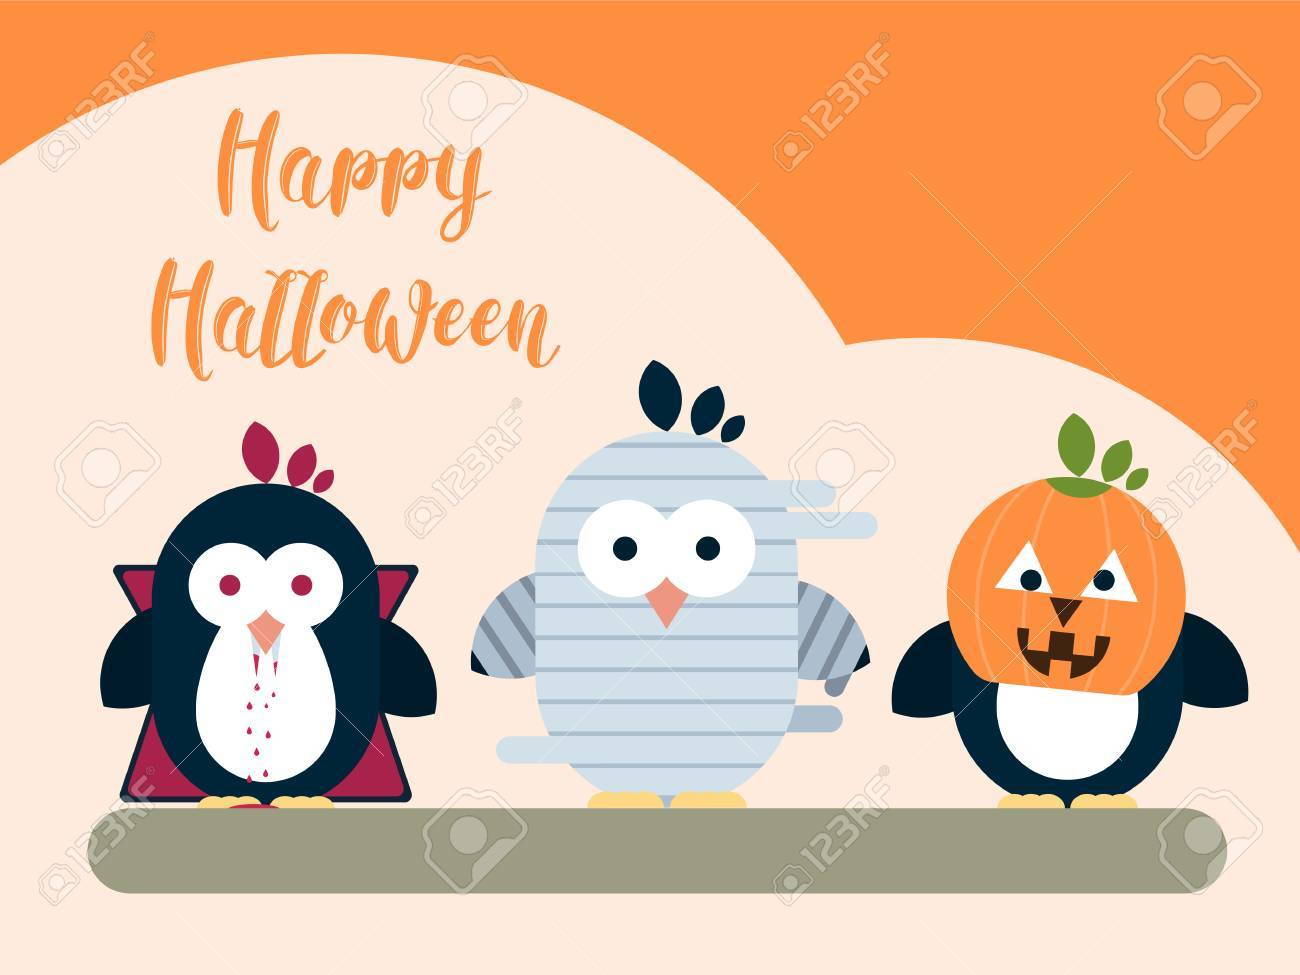 vector halloween card template with stylized penguin characters